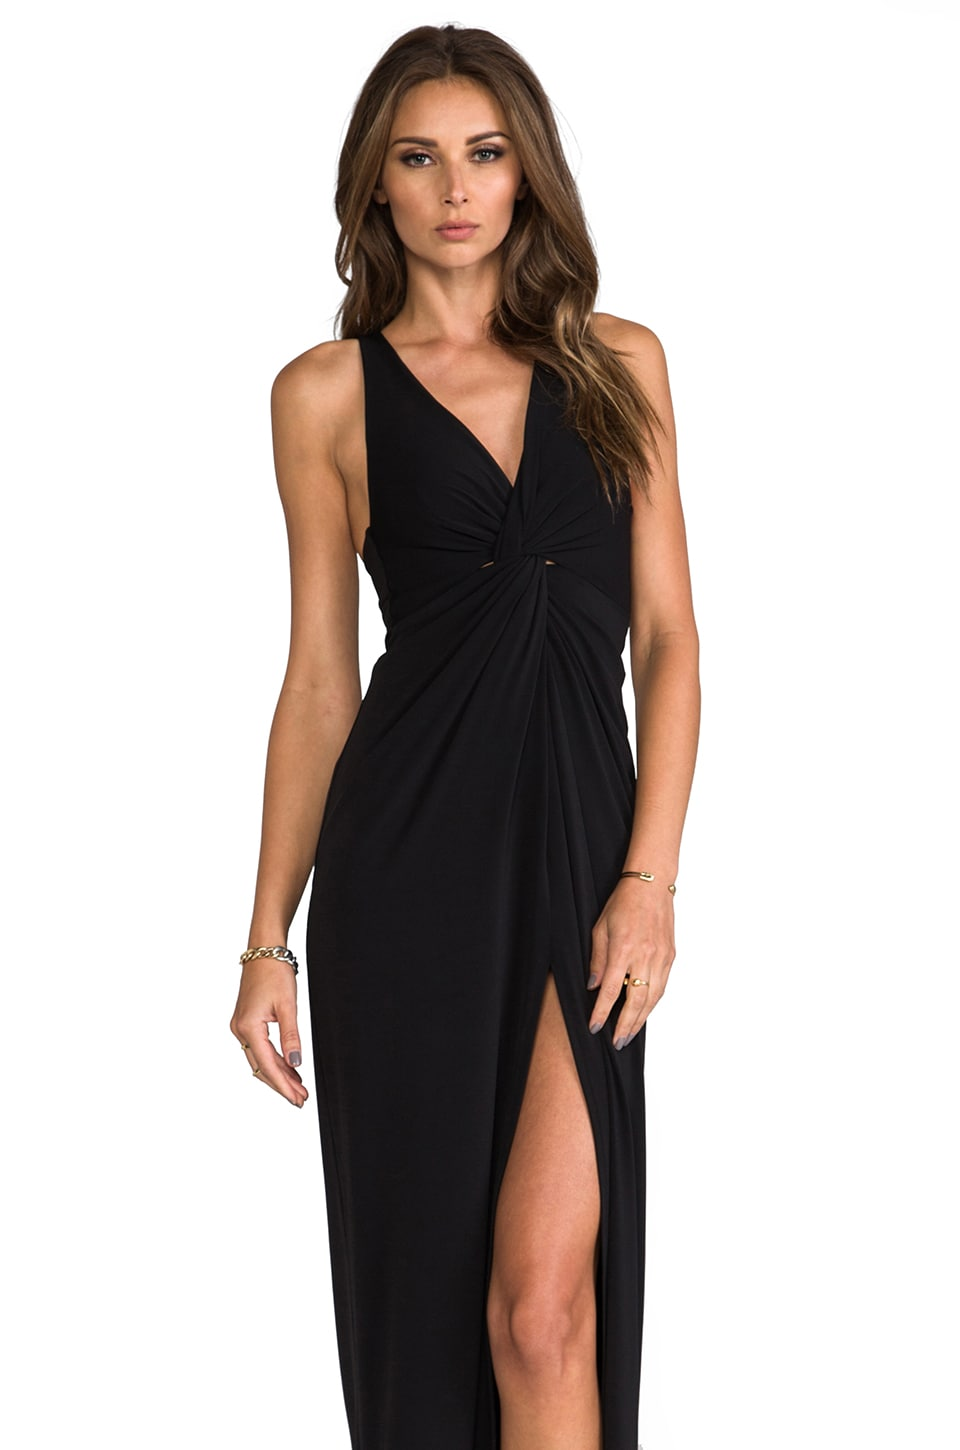 Nookie Twisted Affair Maxi Dress in Black